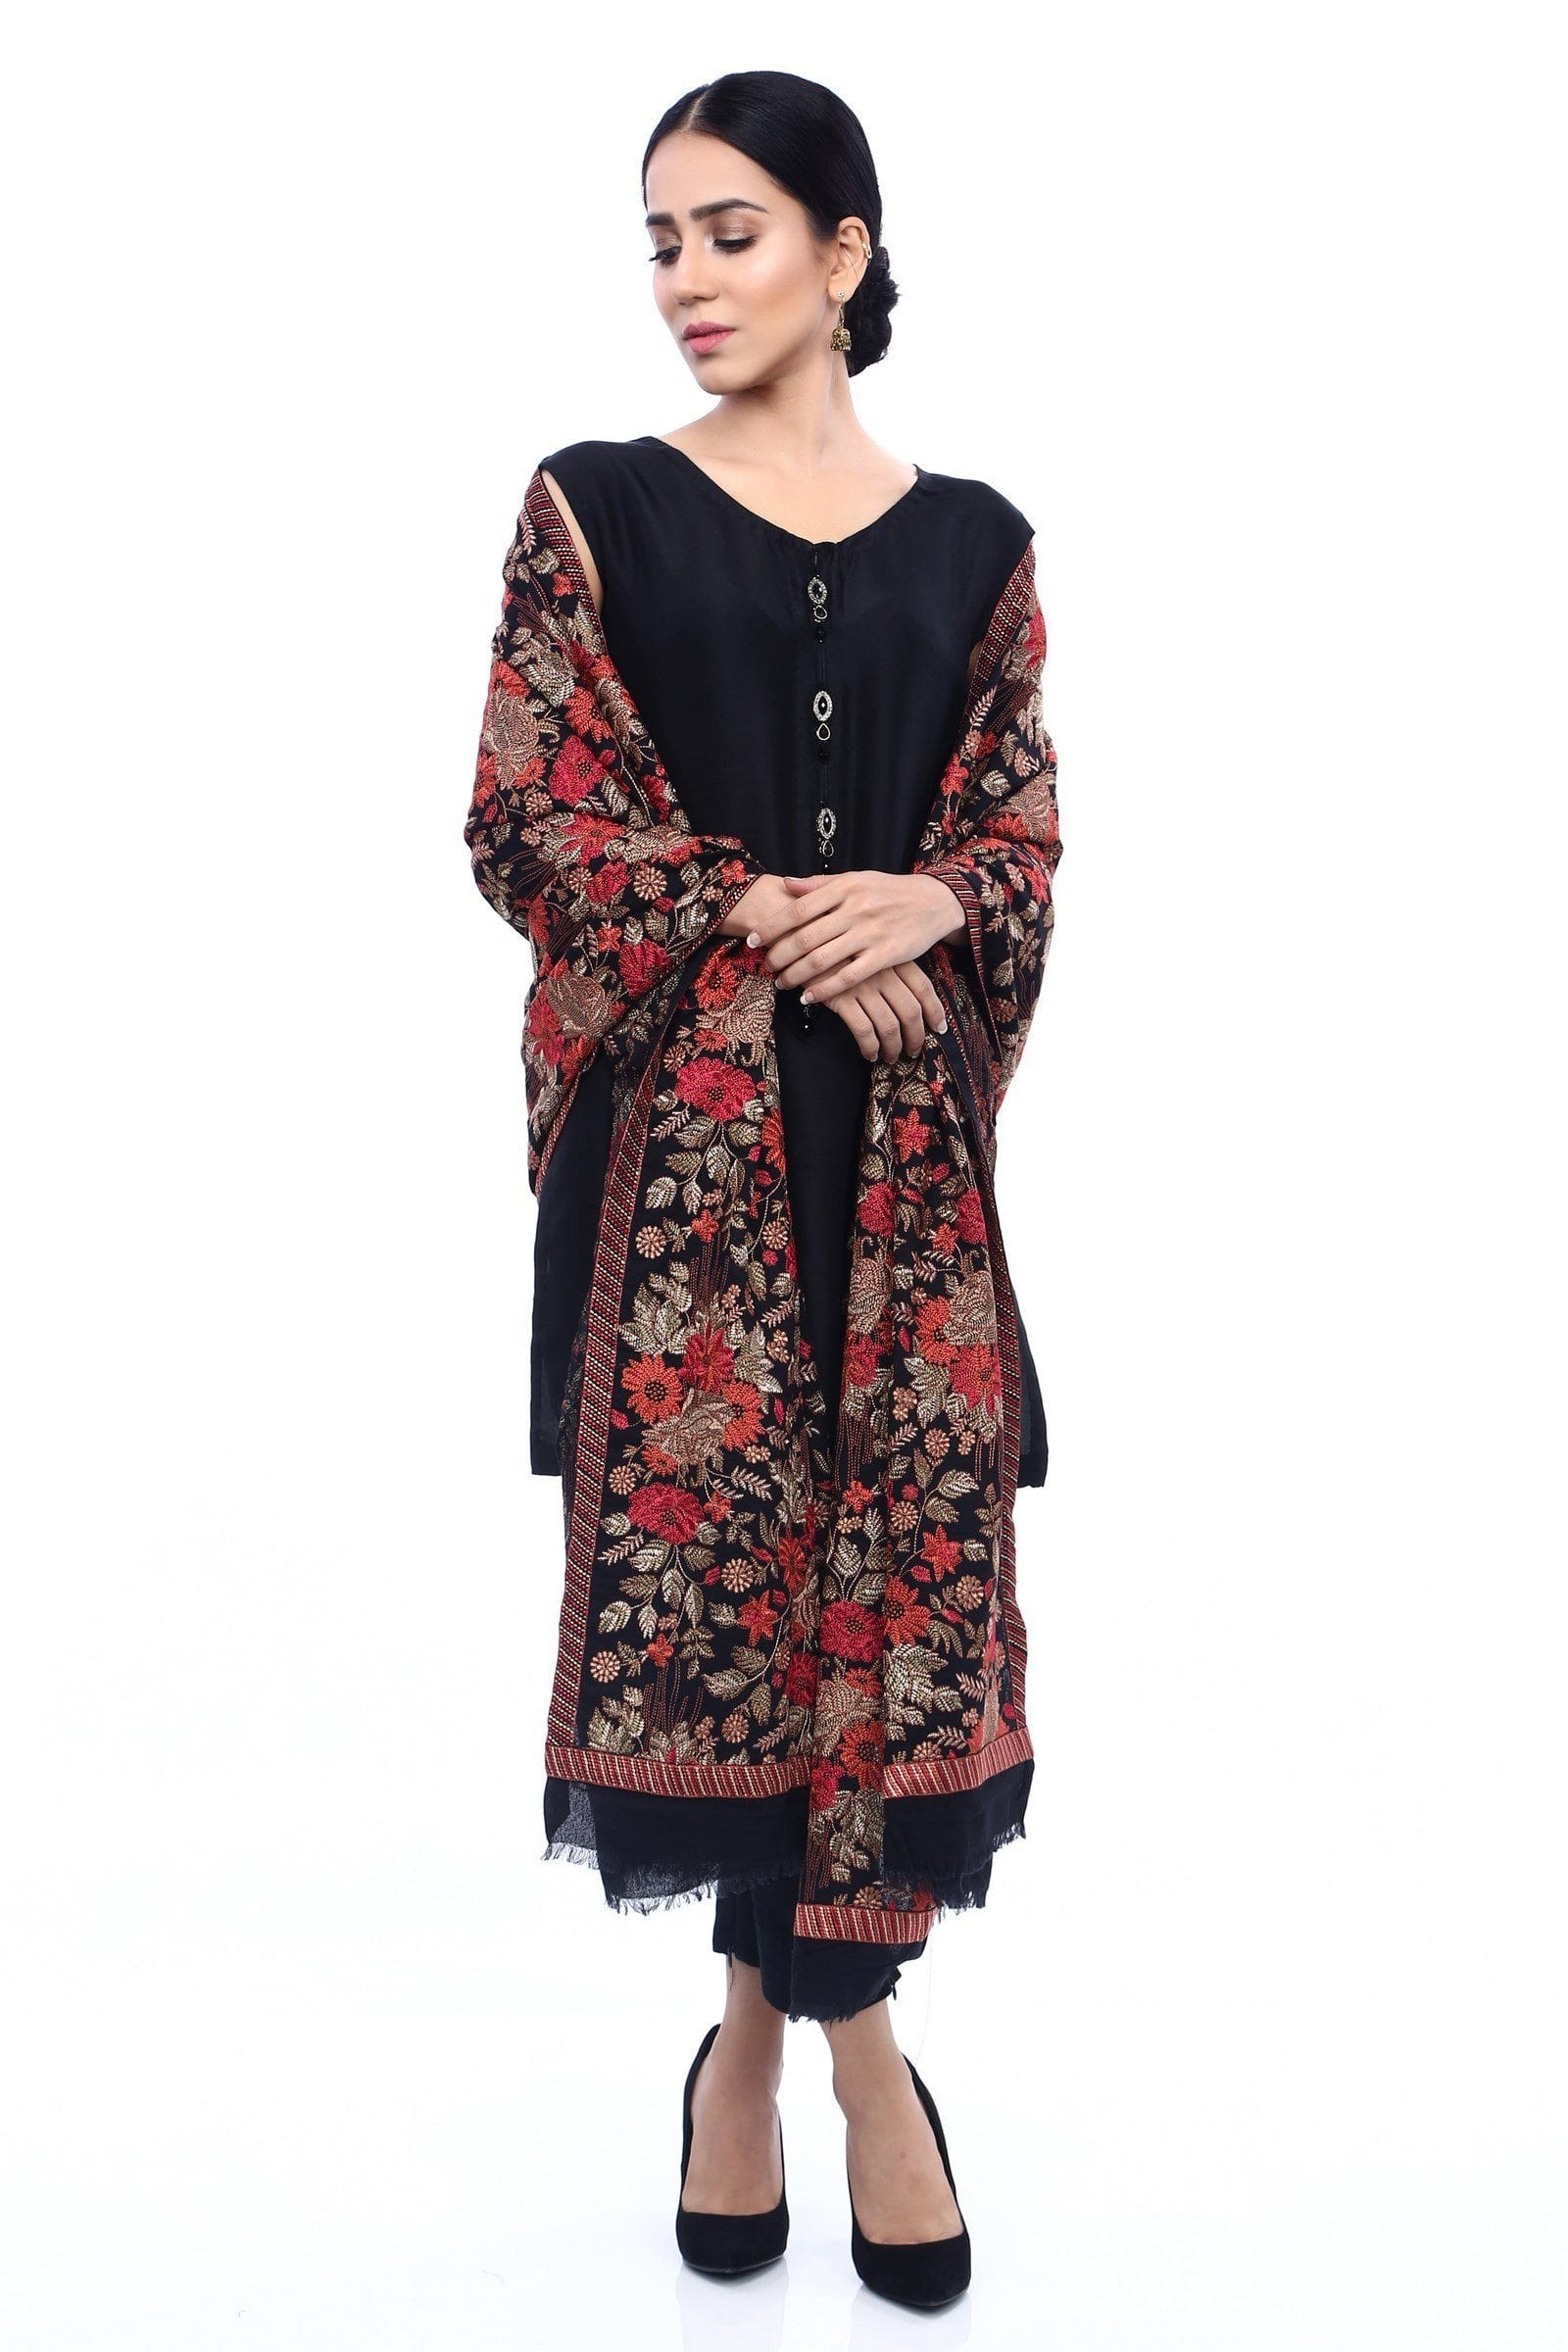 Grace 11 - Formal Heavy Embroidered Karandi Lawn shawl - gracestore.pk